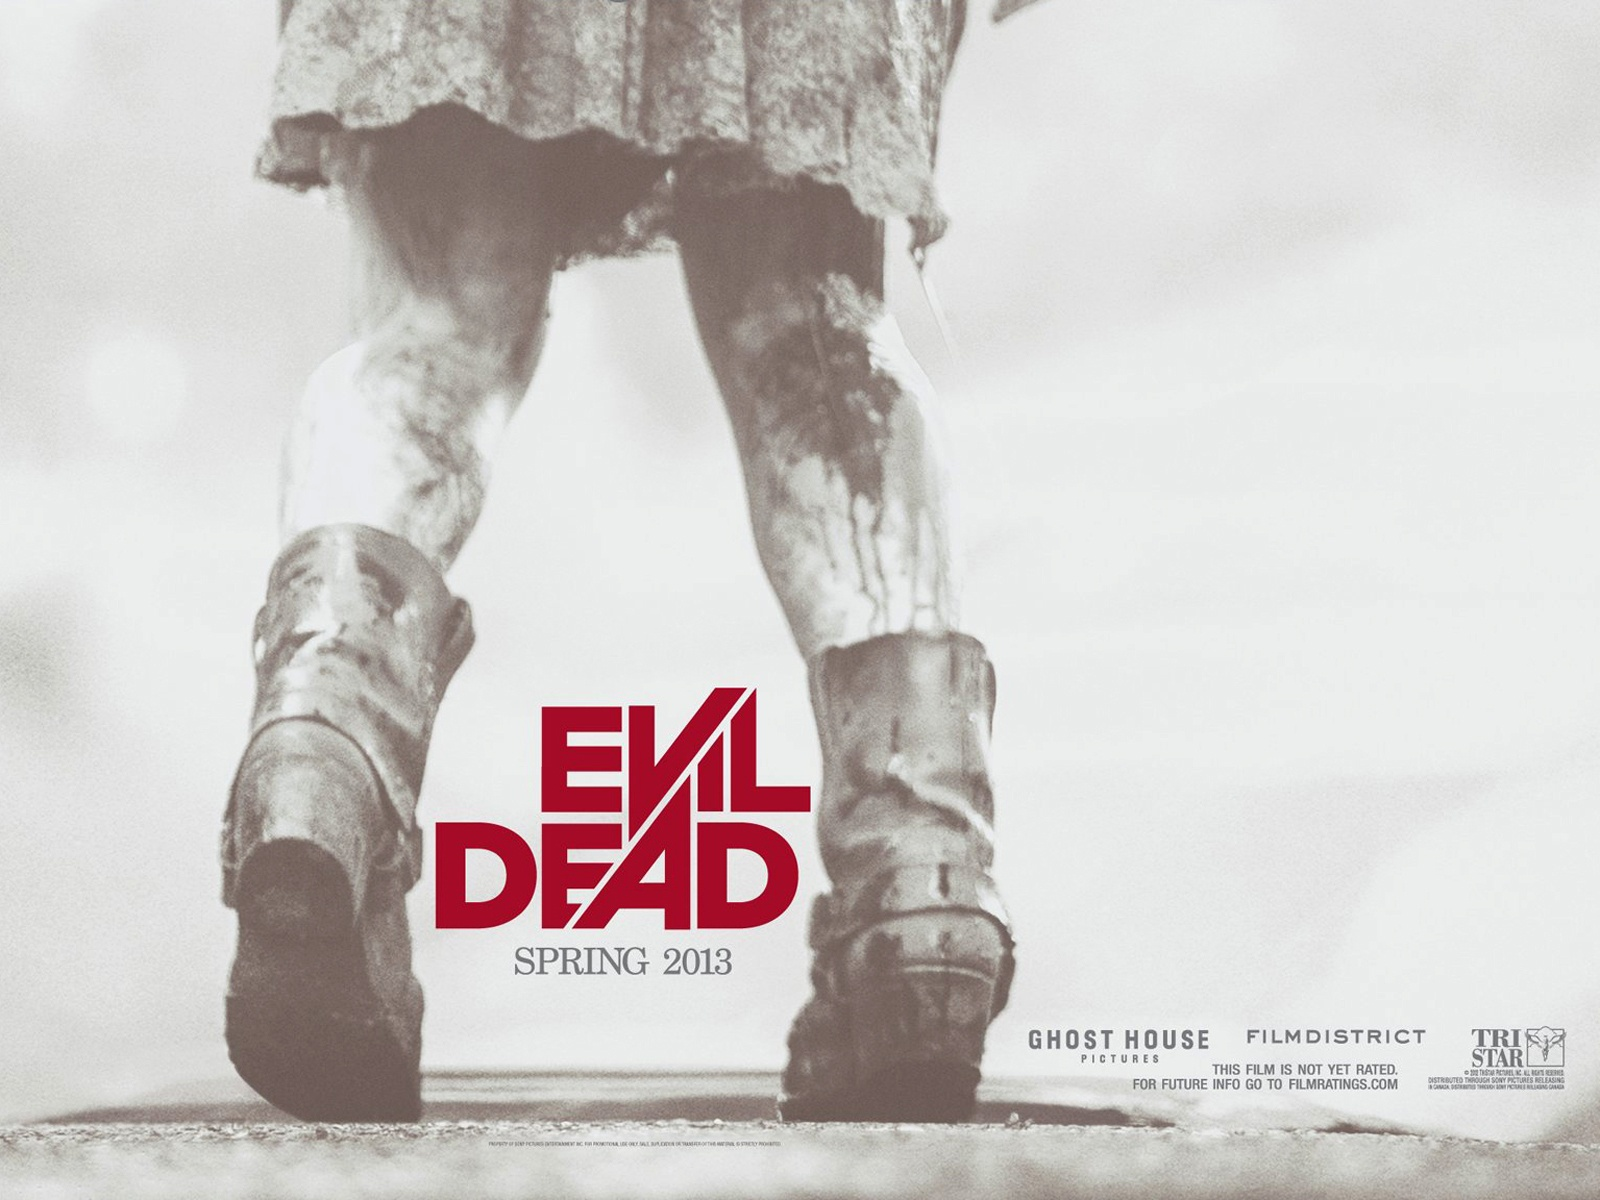 http://2.bp.blogspot.com/-yFj3KwOpZbY/UWgL1Ki0vgI/AAAAAAAATAo/mgLTD6HP4Yo/s1600/OR_Evil+Dead+2013+movie+Wallpaper+1600x1200.jpg